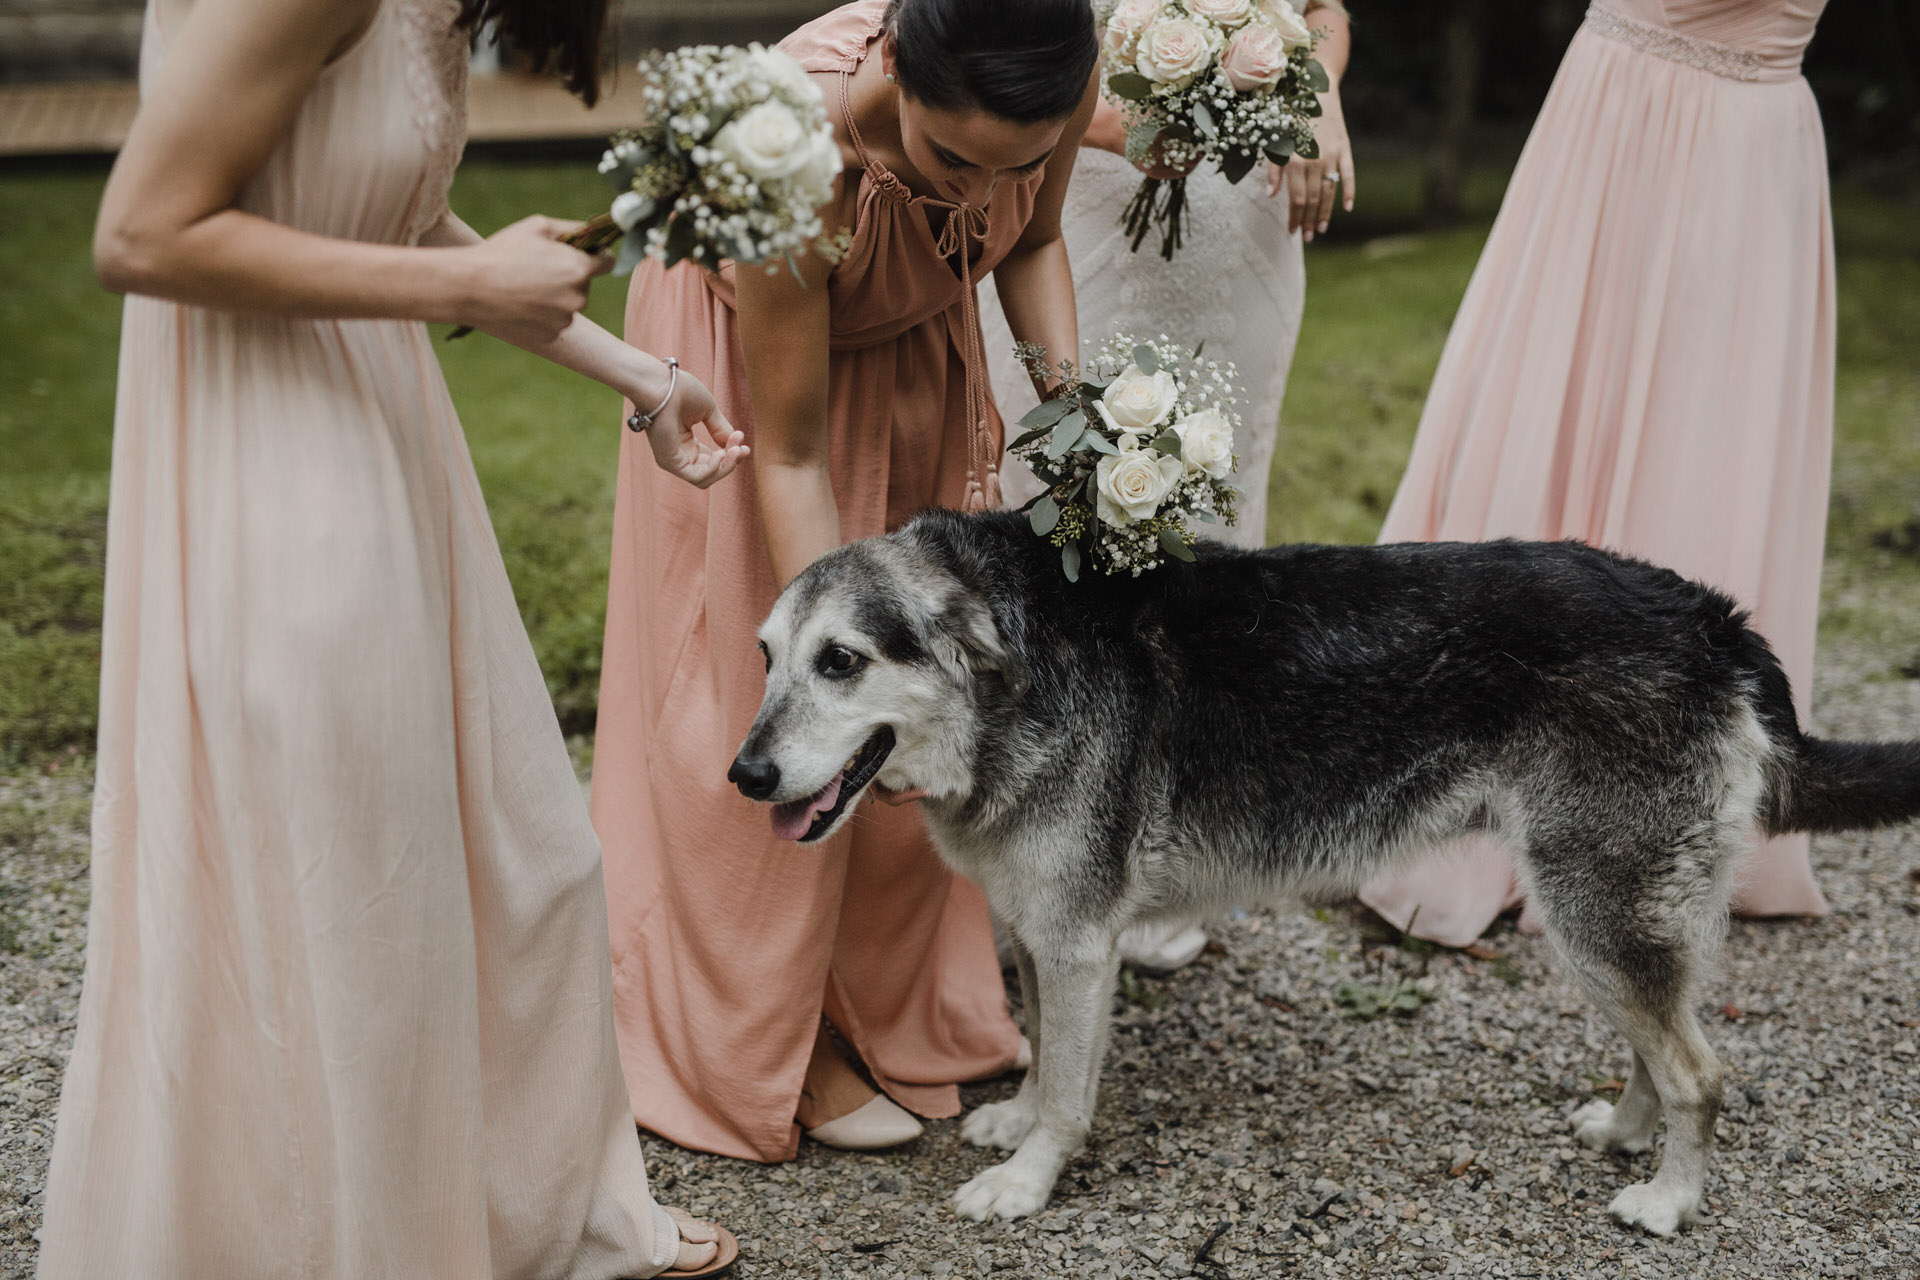 Muskoka Wedding - puppy love